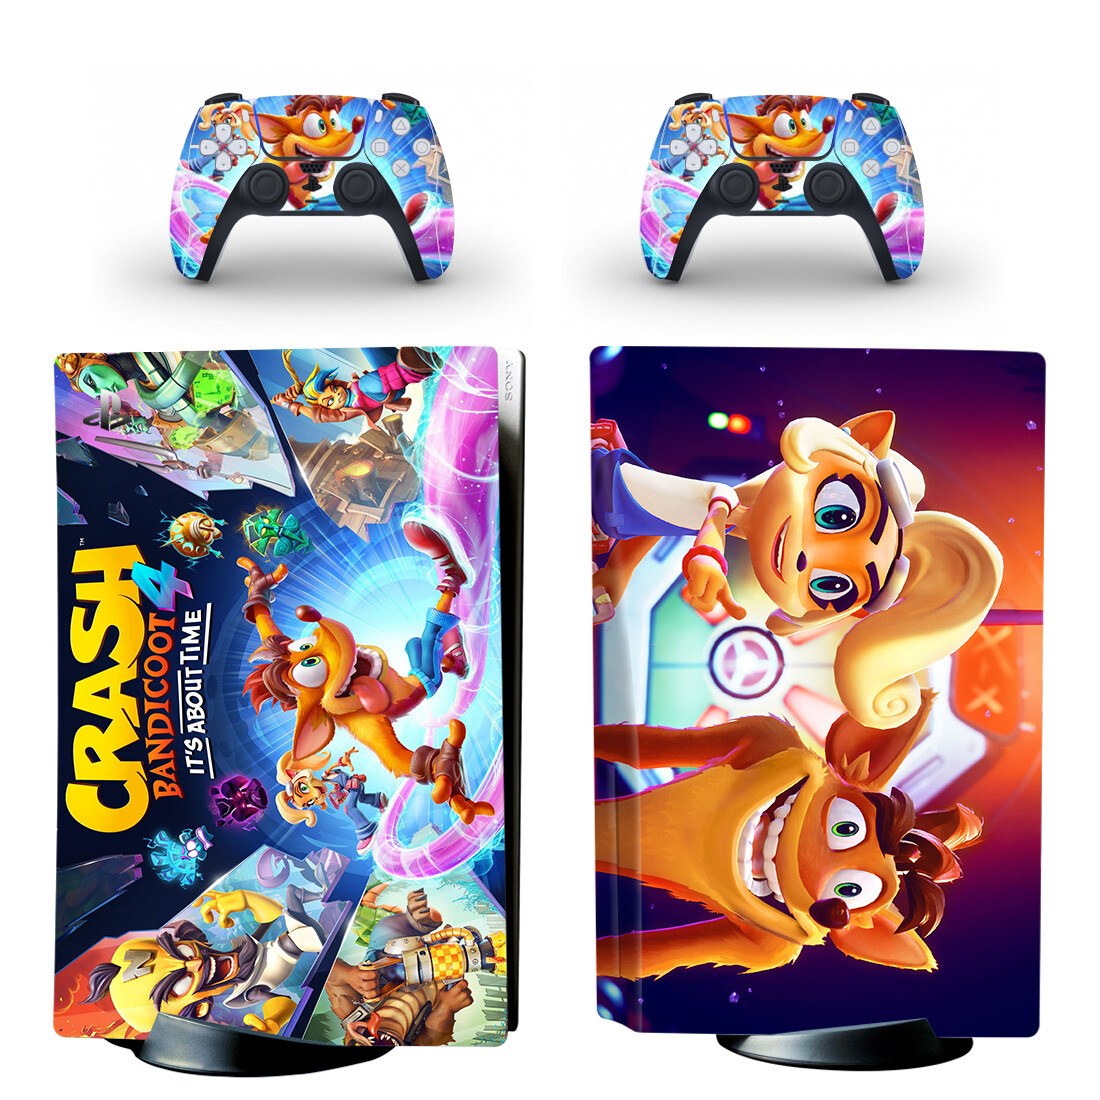 Crash Bandicoot 4 It's About Time PS5 Skin Sticker Decal Design 2